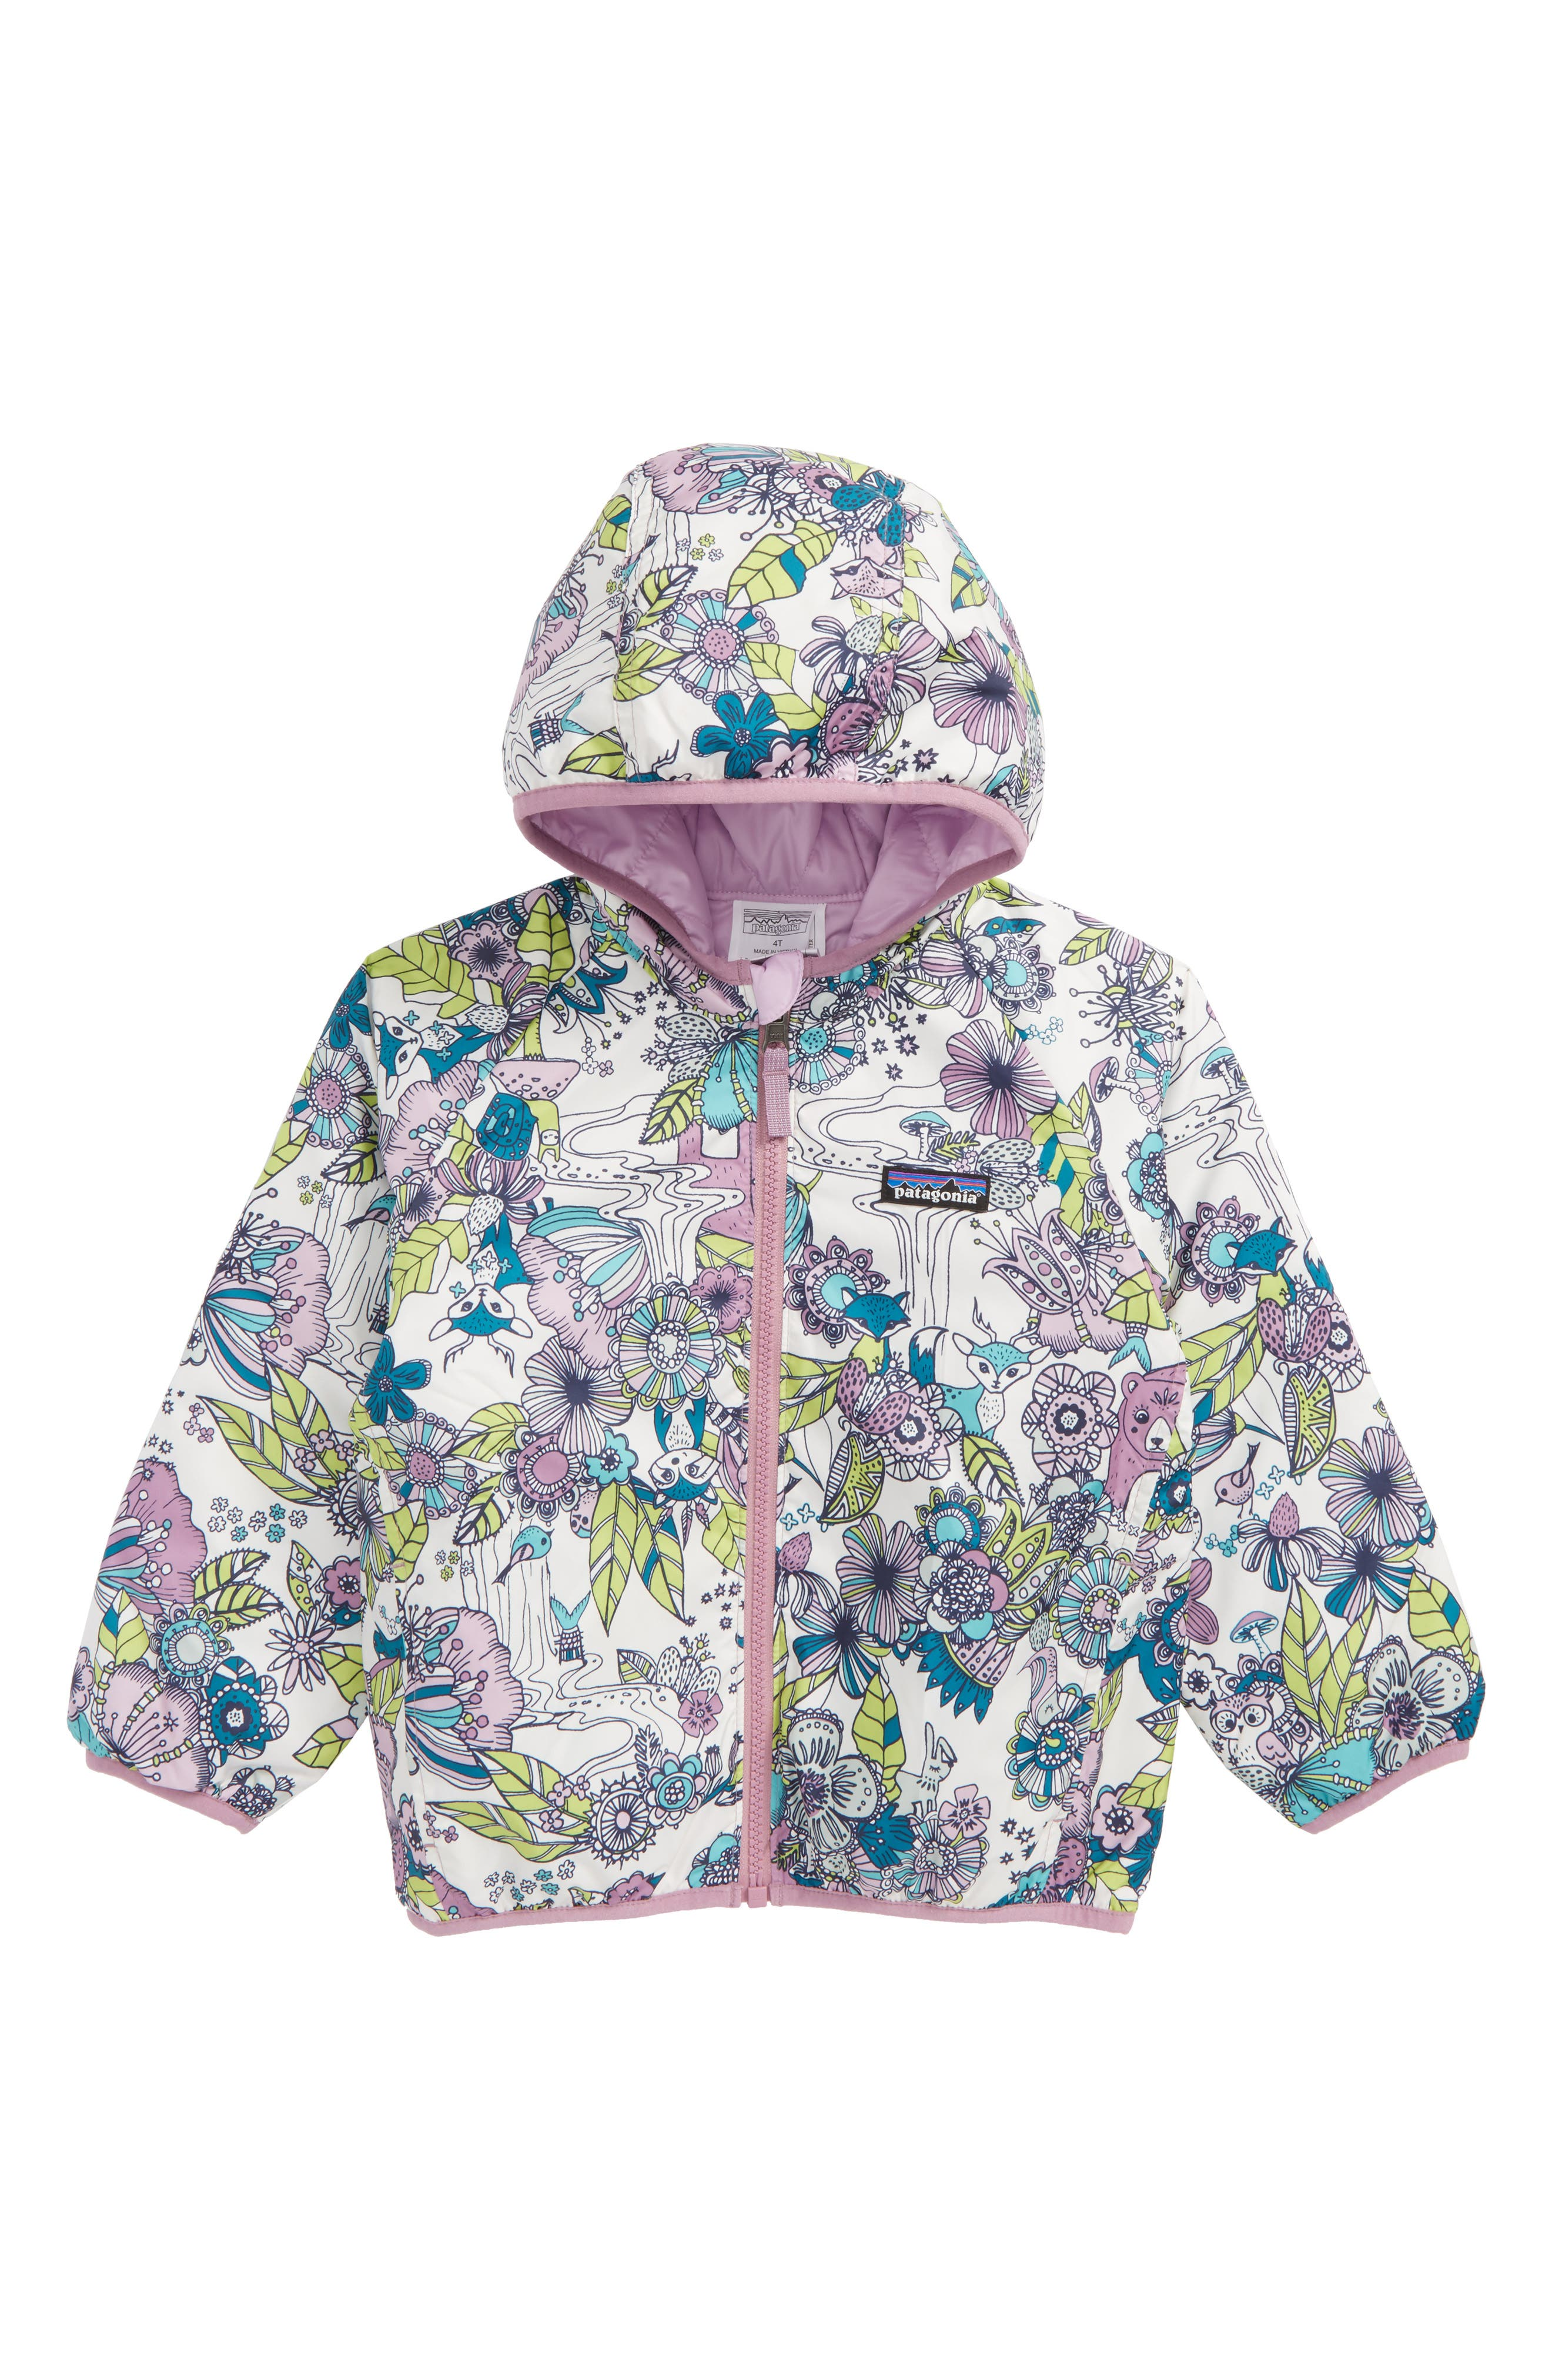 'Puff-Ball' Water Resistant Reversible Hooded Jacket,                             Main thumbnail 1, color,                             101